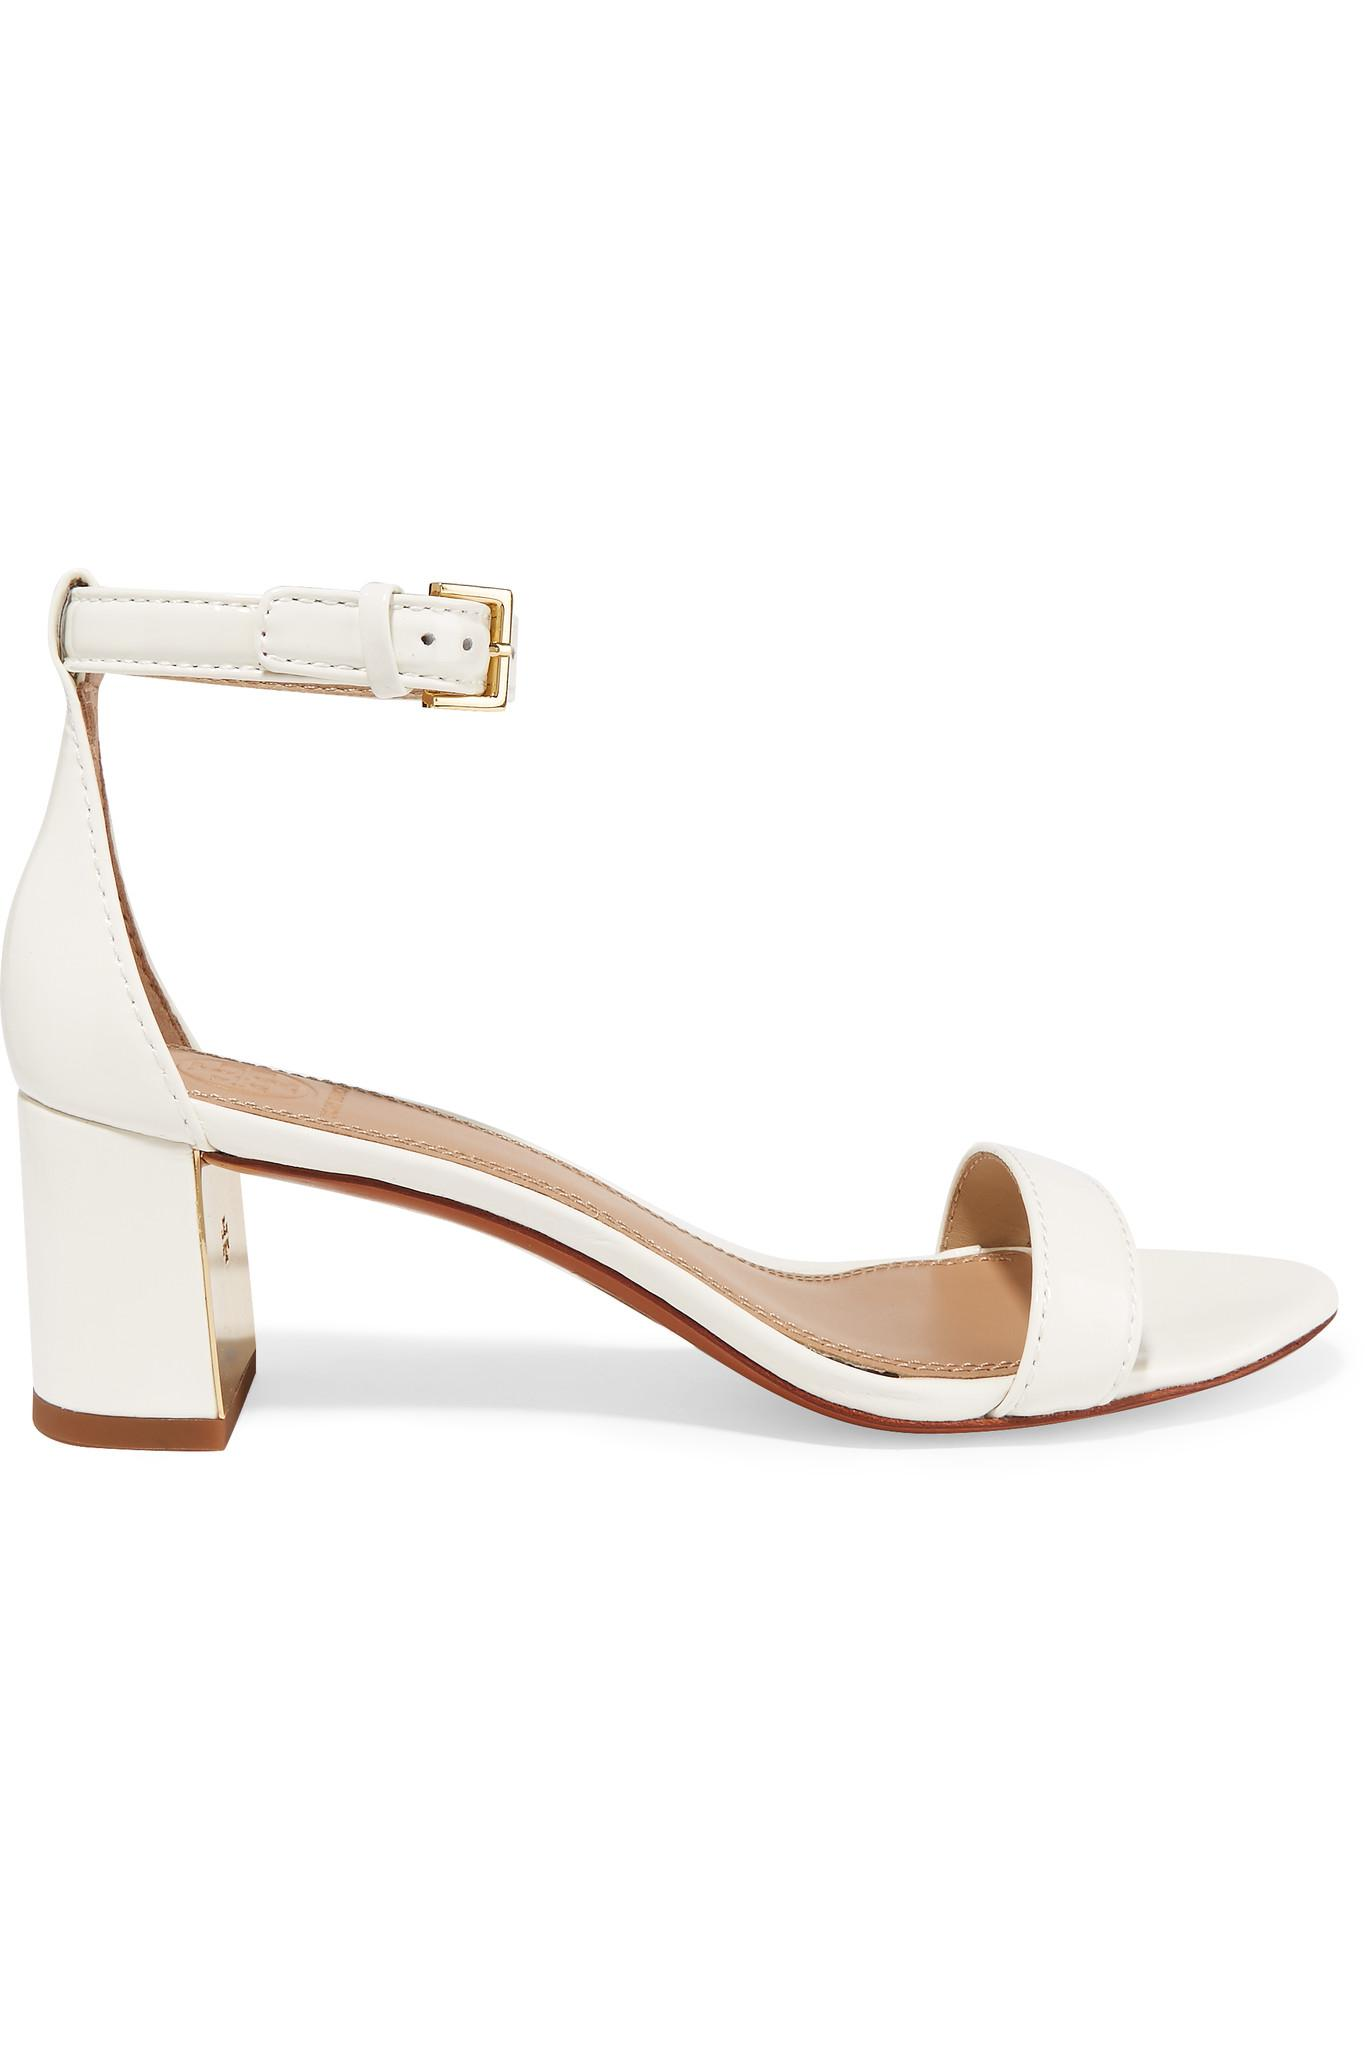 f16f406404ee2 Lyst - Tory Burch Cecile Patent-leather Sandals in White